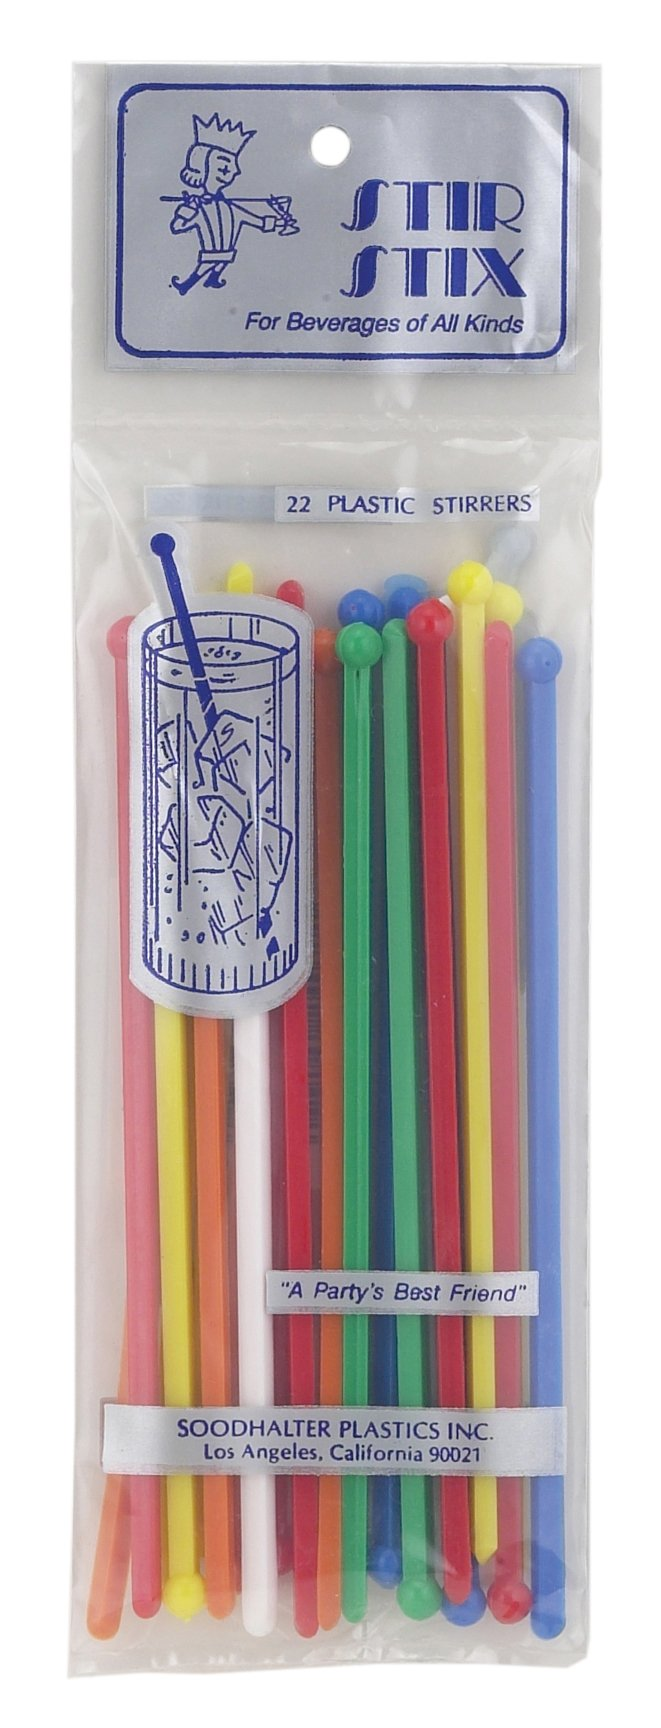 Soodhalter Stir Stix, Cocktail Swizzle Sticks, BPA-Free Plastic, Assorted Colors, 6-Inches, Set of 22